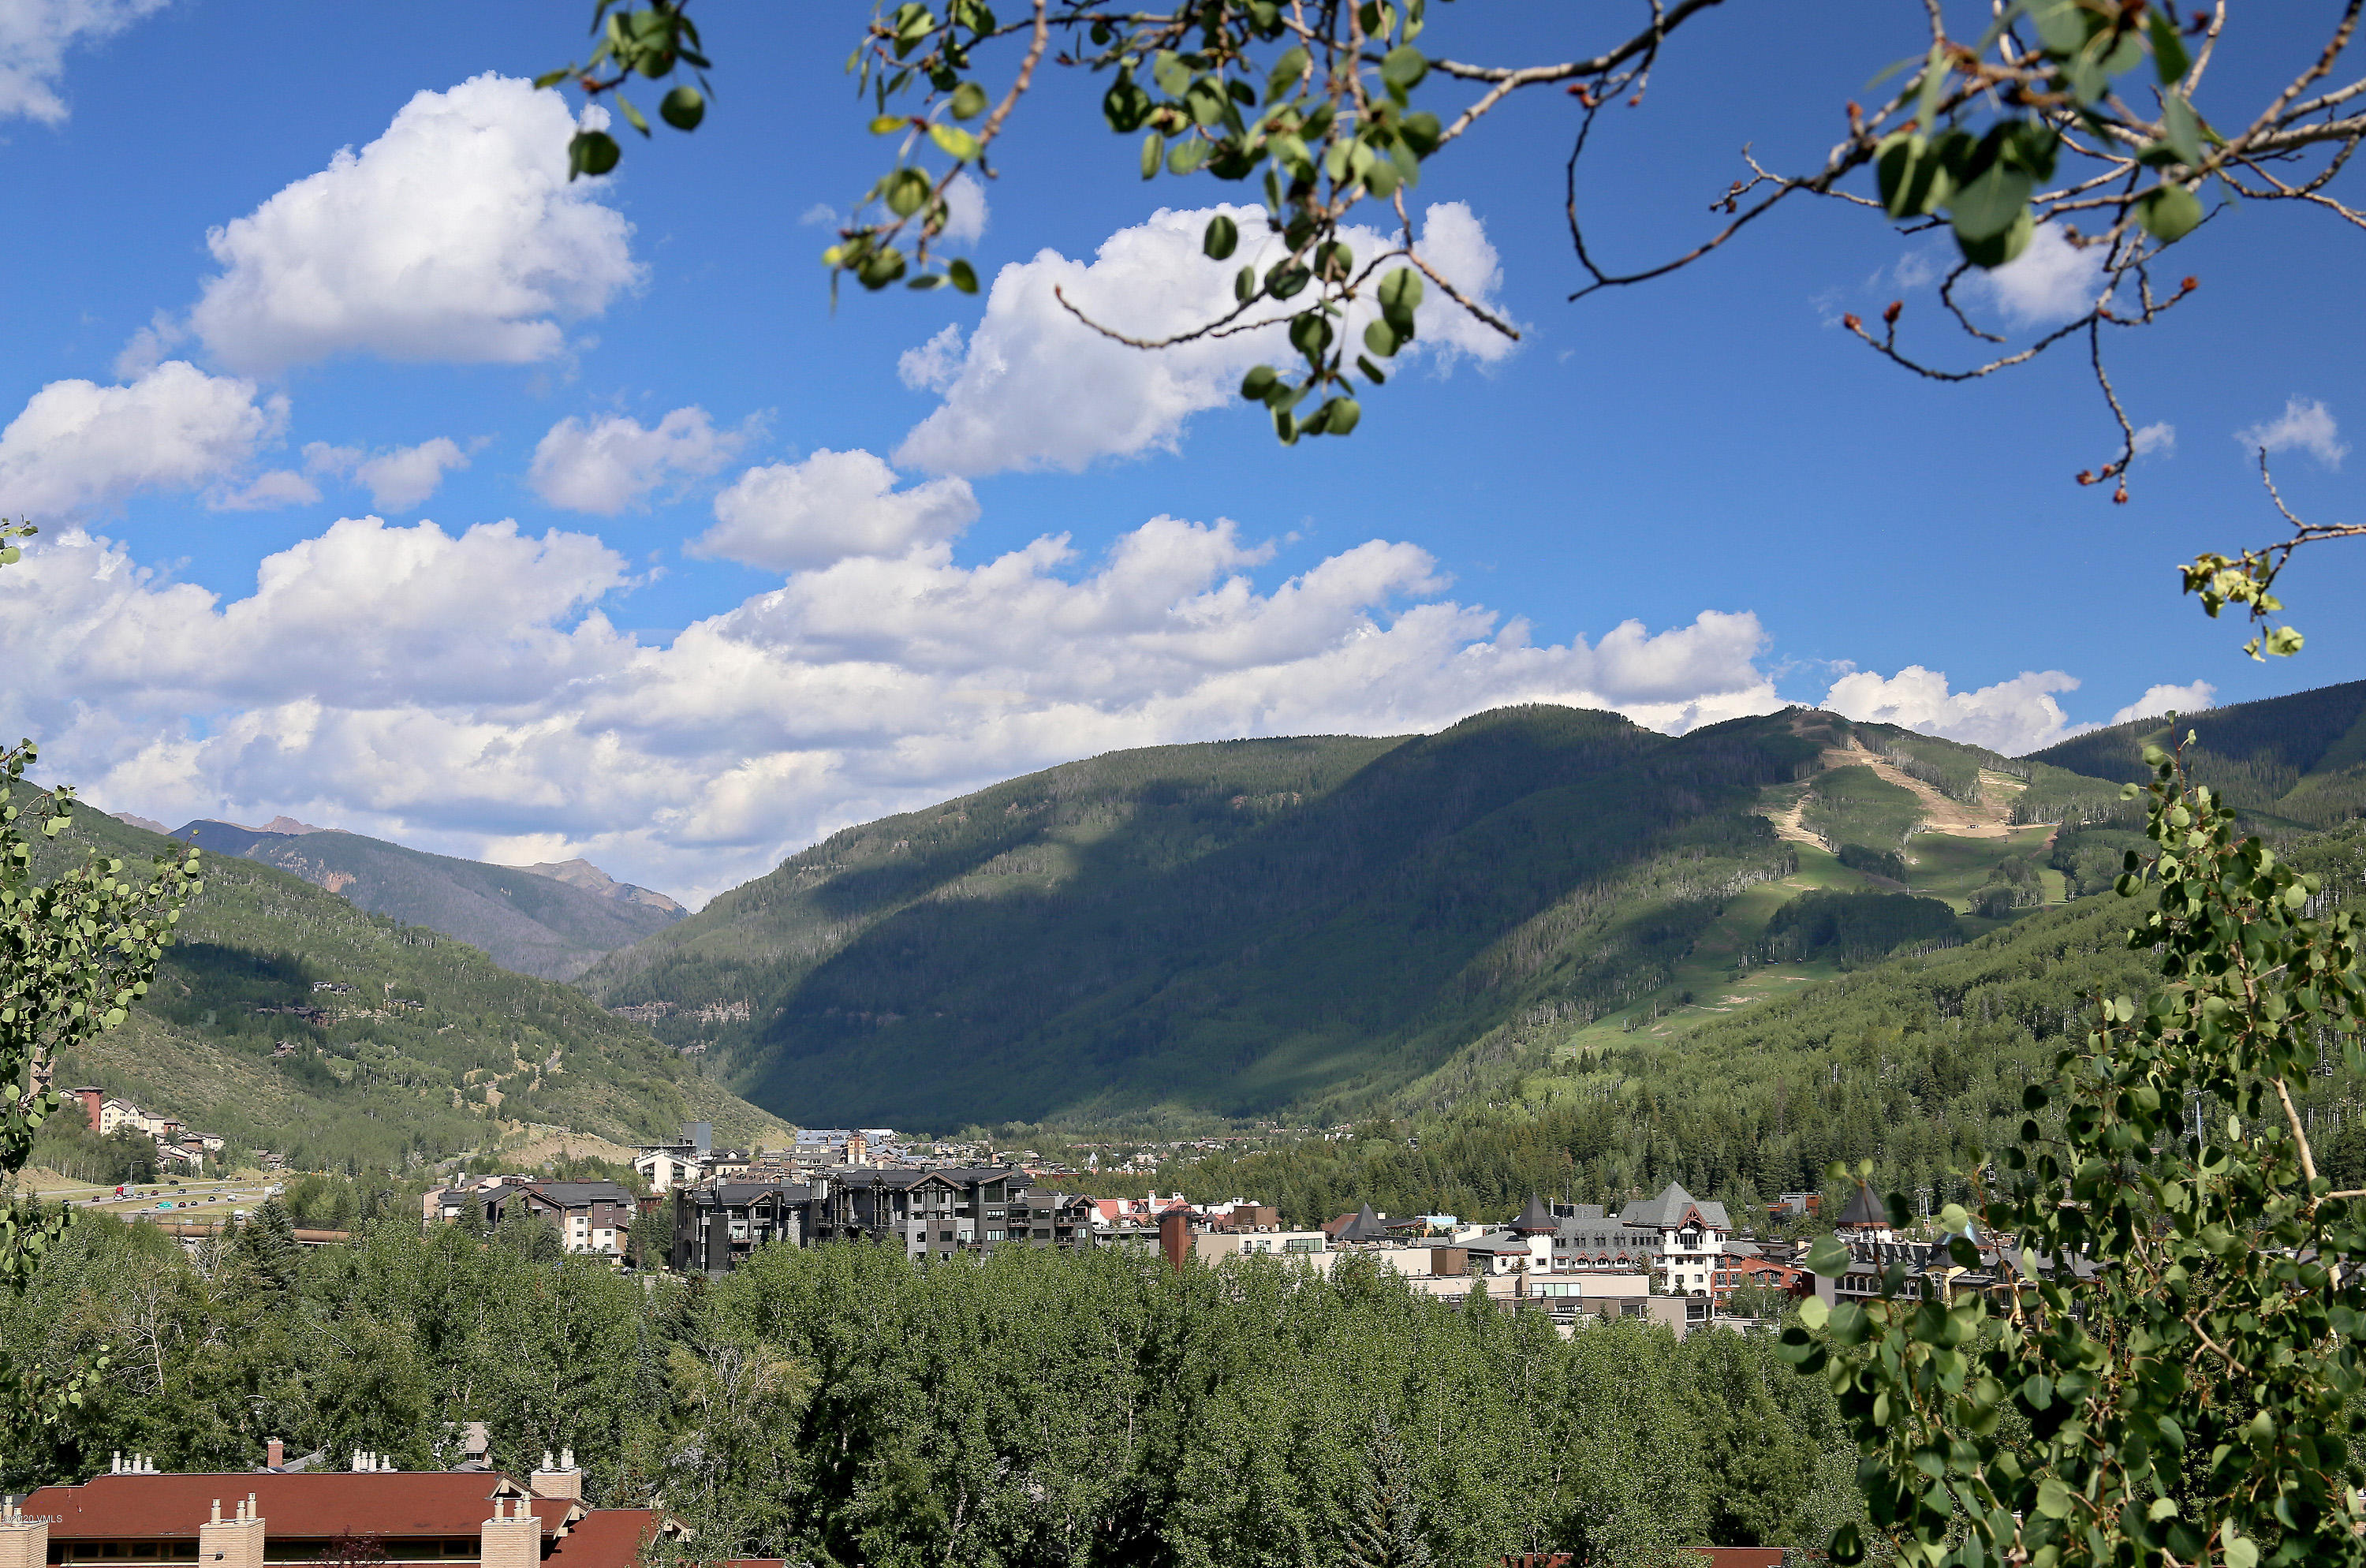 This fully remodeled and furnished, 2-bedroom, 2-bathroom home is located on the desirable sunny side of the Vail Valley. The top floor unit with vaulted ceilings throughout, an open floor plan and floor to ceiling windows gives the sense of your own sanctuary and a feeling of greater spaciousness. The view from the living room of the Vail Mountain is absolutely breathtaking.  Make this your home whether you are a full-time owner, front range buyer or looking for a property with consistent rental income. This location, away from the highway noise, provides for an easy access to skiing, hiking trails, shopping and dining.  Other benefits include a covered parking, washer/dryer in the unit, 4 storage closets, new hot water heater, a large community storage beneath the building, low HOA monthly fee with a quality and timely maintenance.